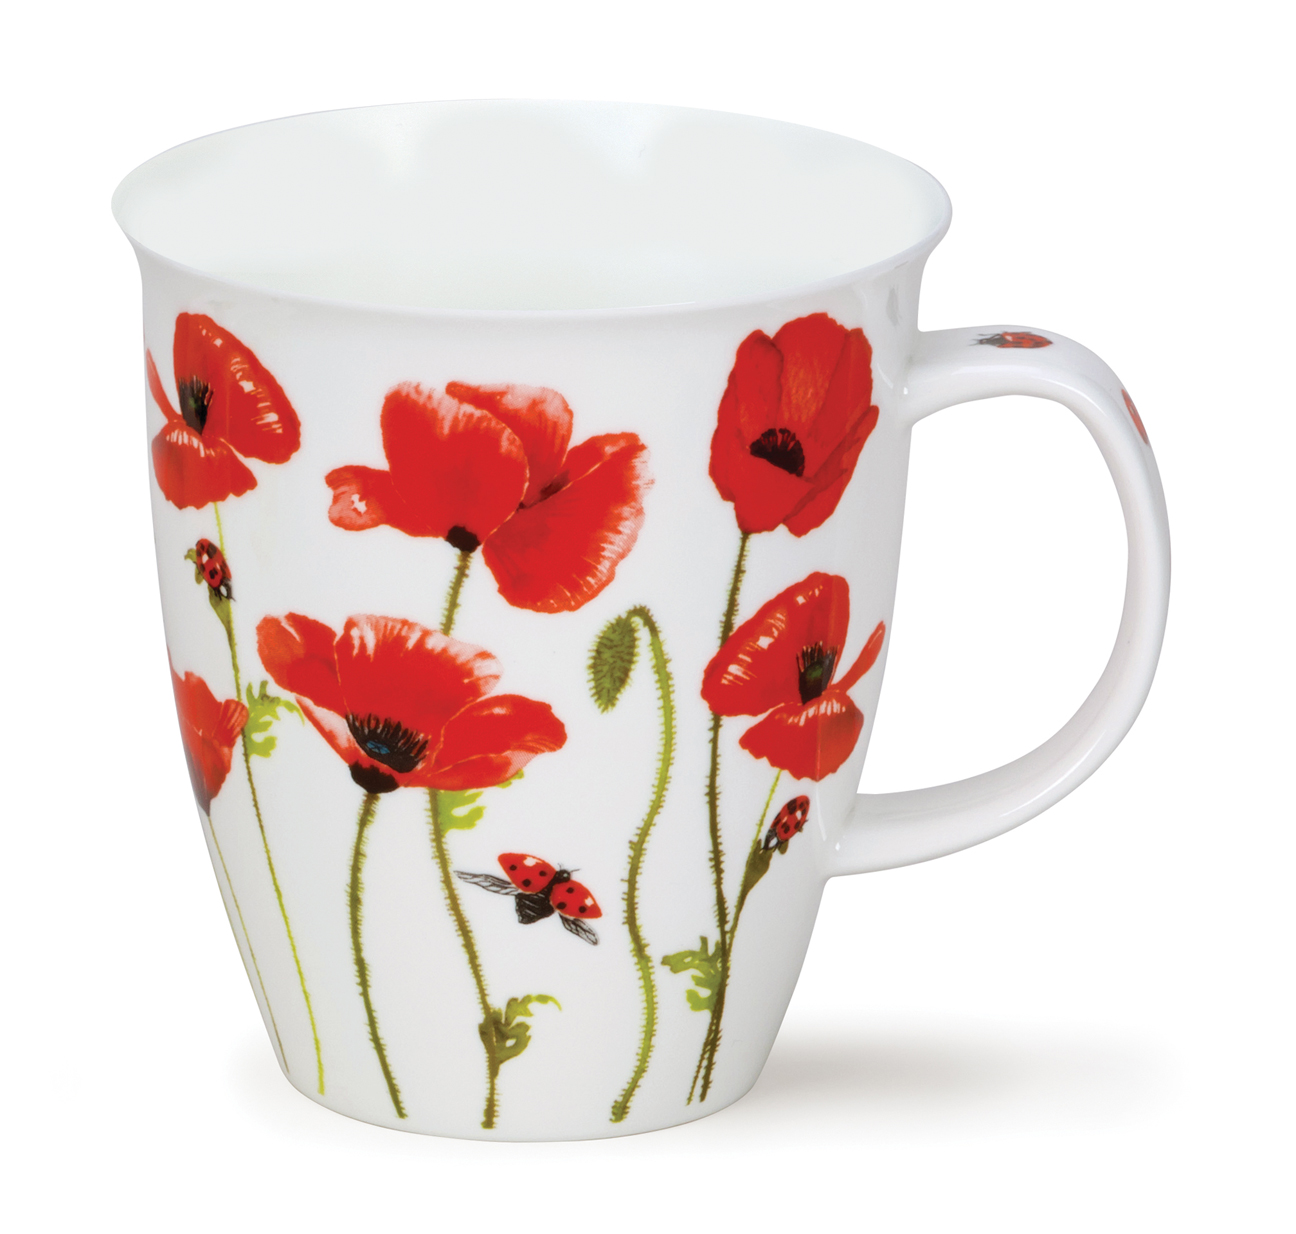 sc 1 st  Distinctive Decor & Dunoon Nevis Somerset Poppy Mug